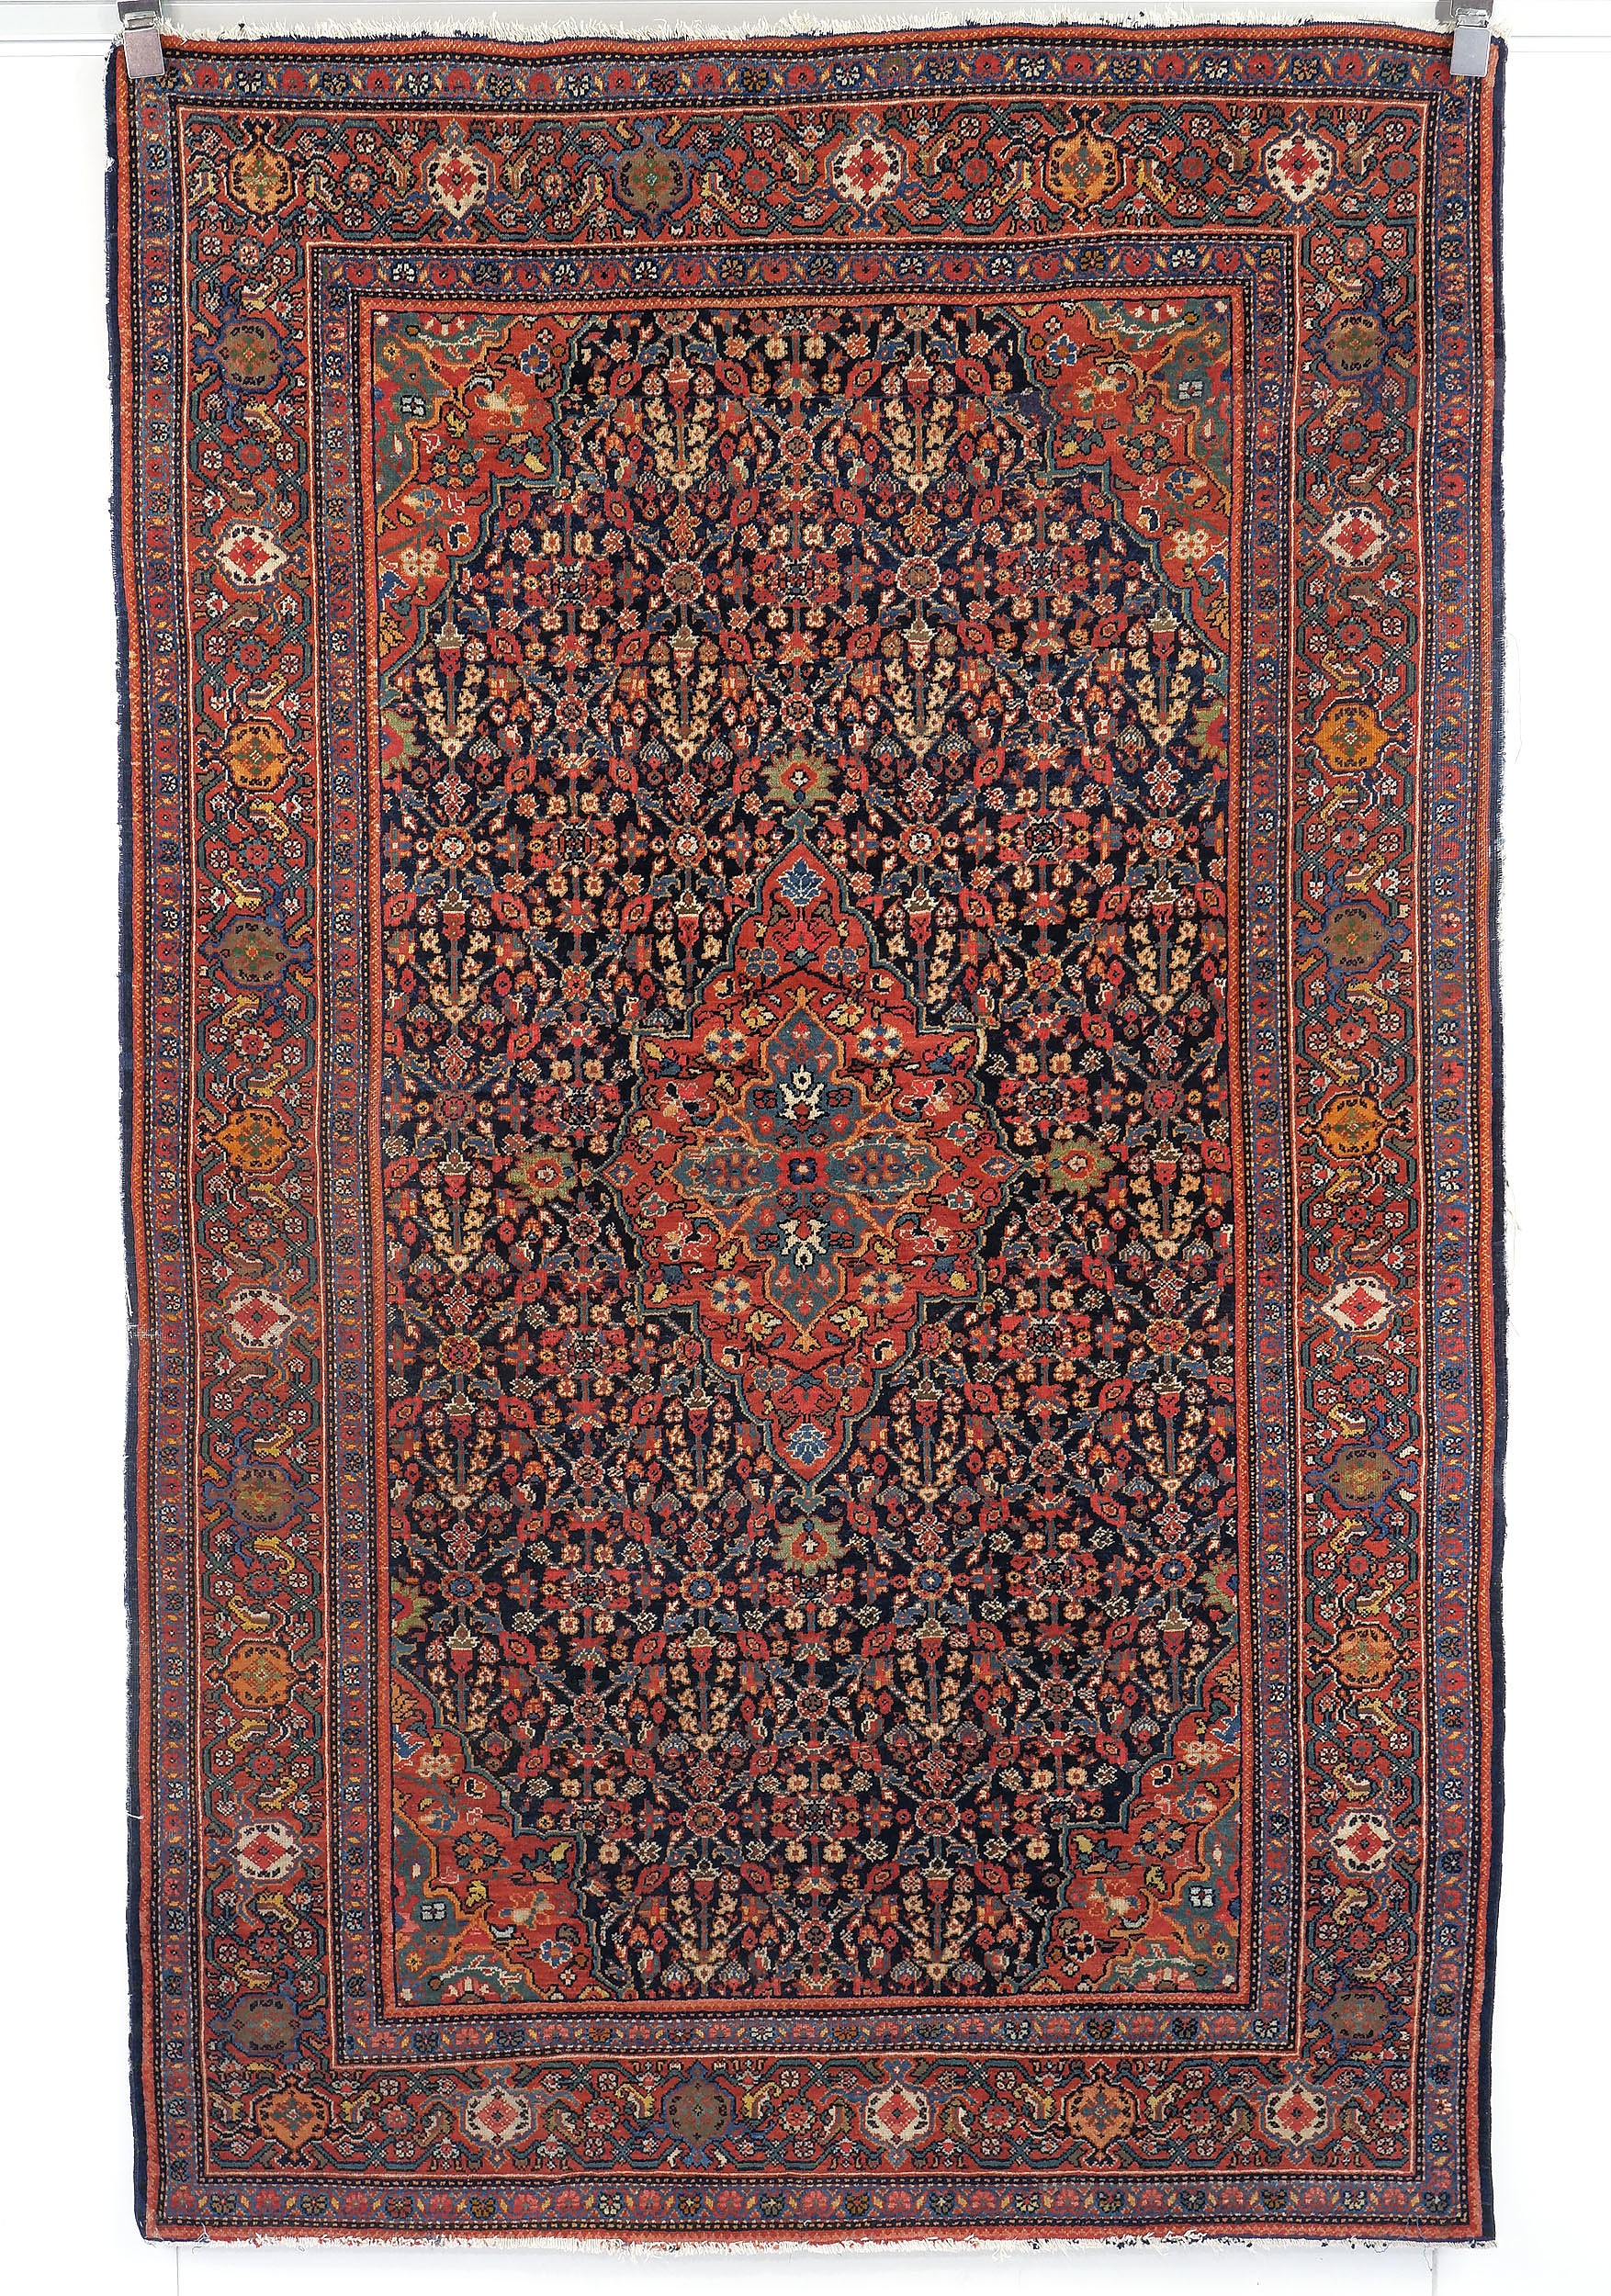 'Antique Finely Knotted Wool Pile Persian Mahal Rug Early 20th Century'